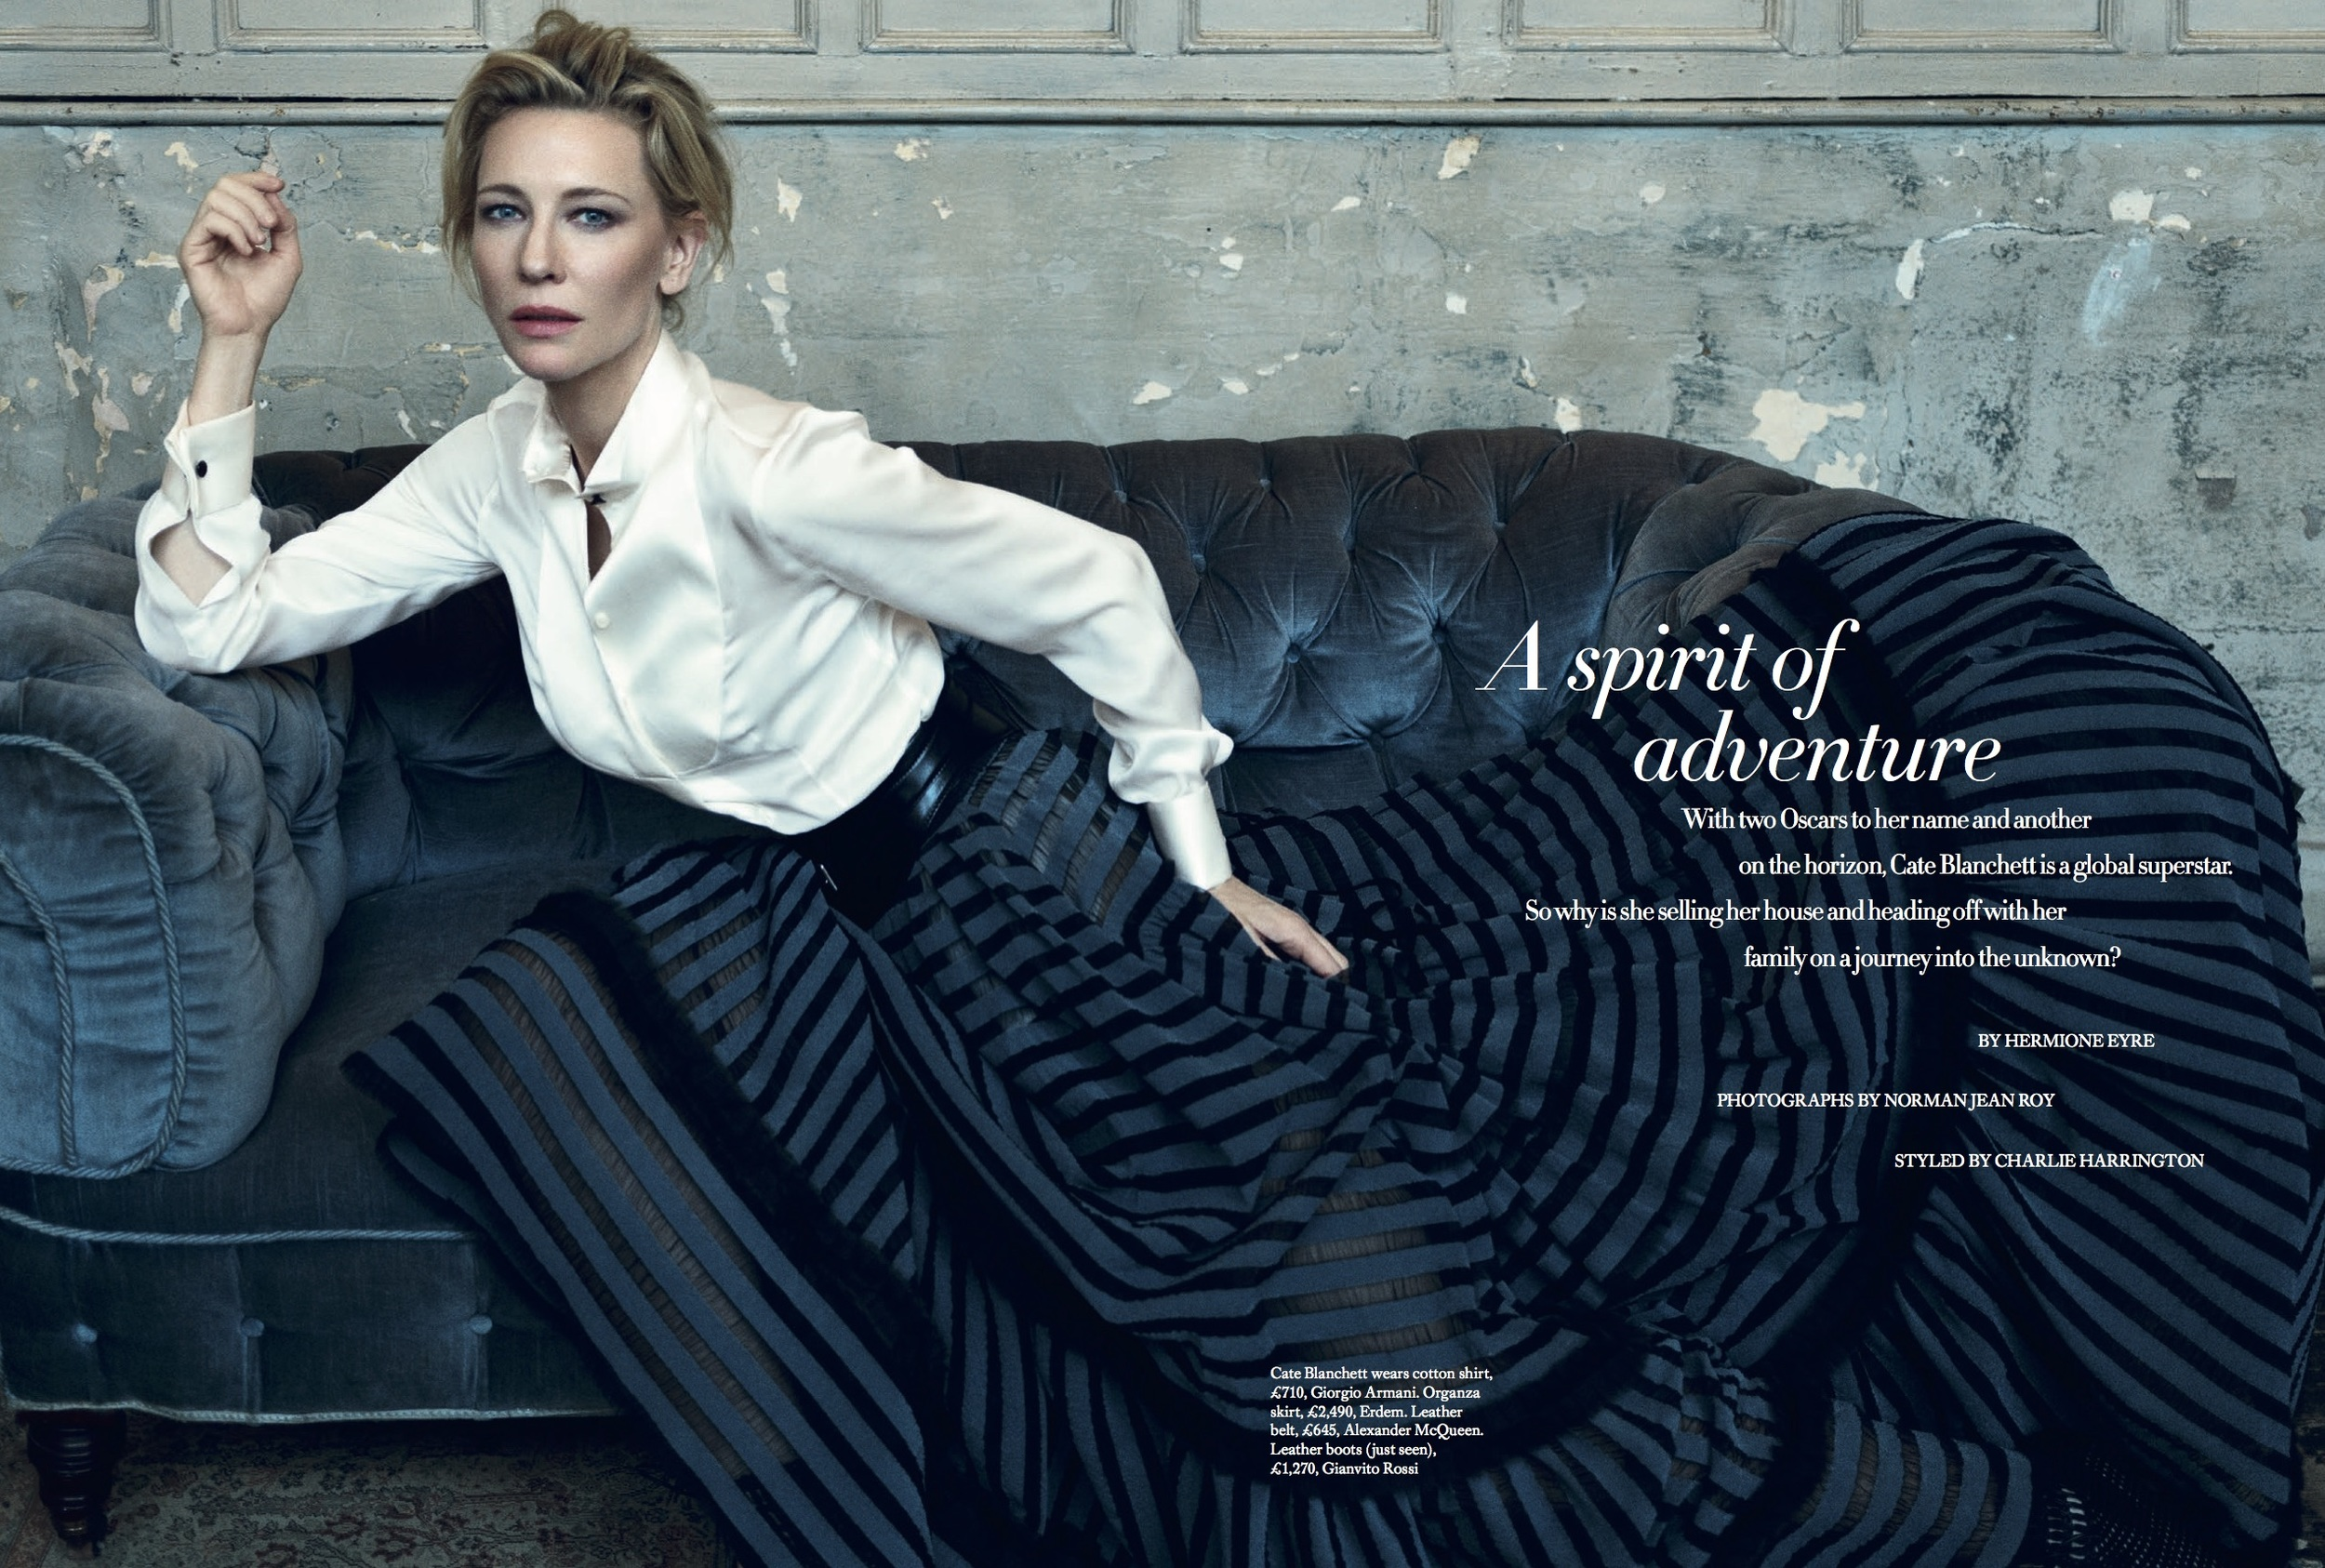 Cate Blanchett Cover Story for Harper's Bazaar, styled by Charlie Harrington. Spread 1.